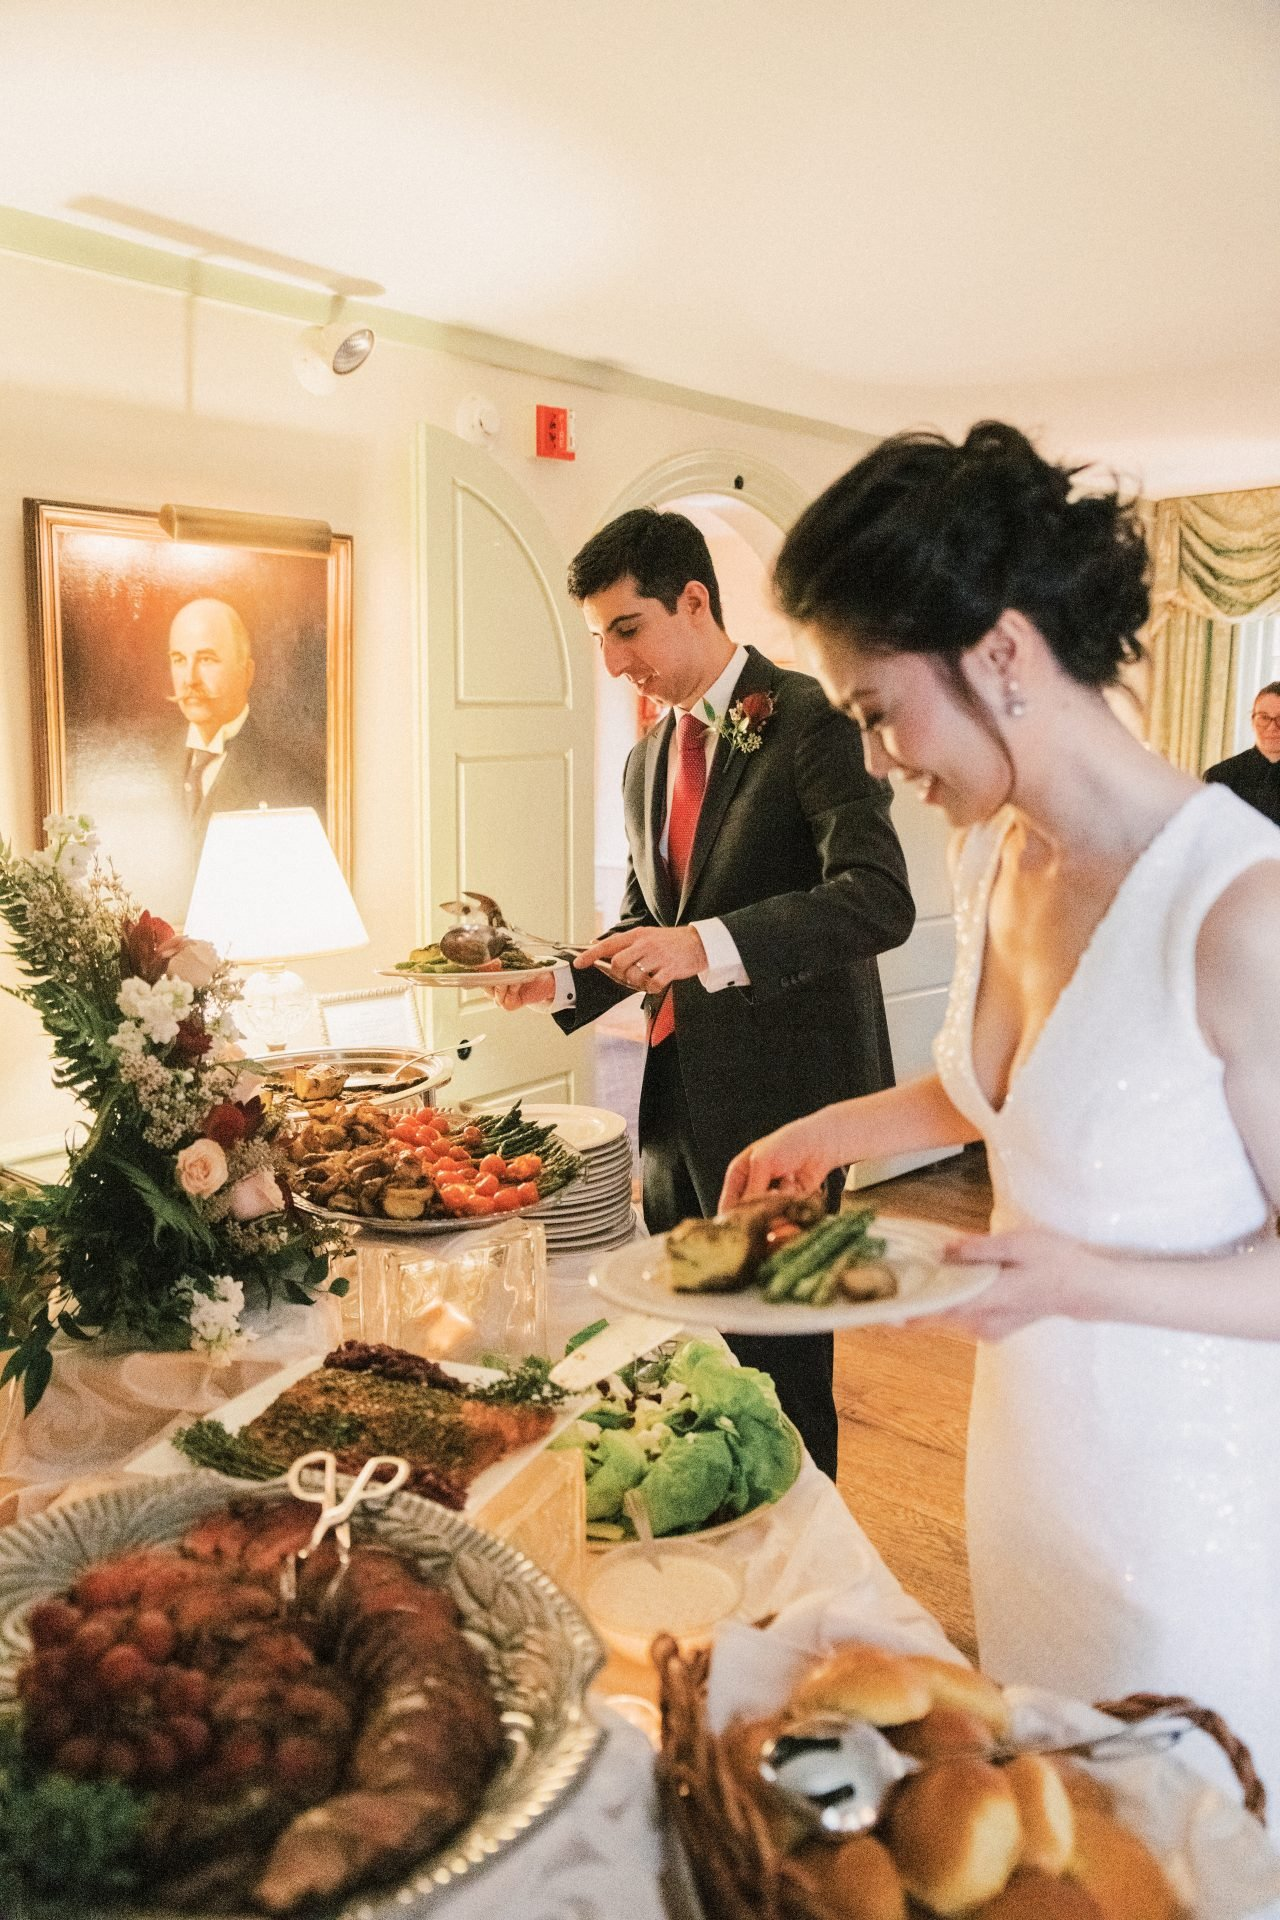 Buffet-Style Wedding Reception